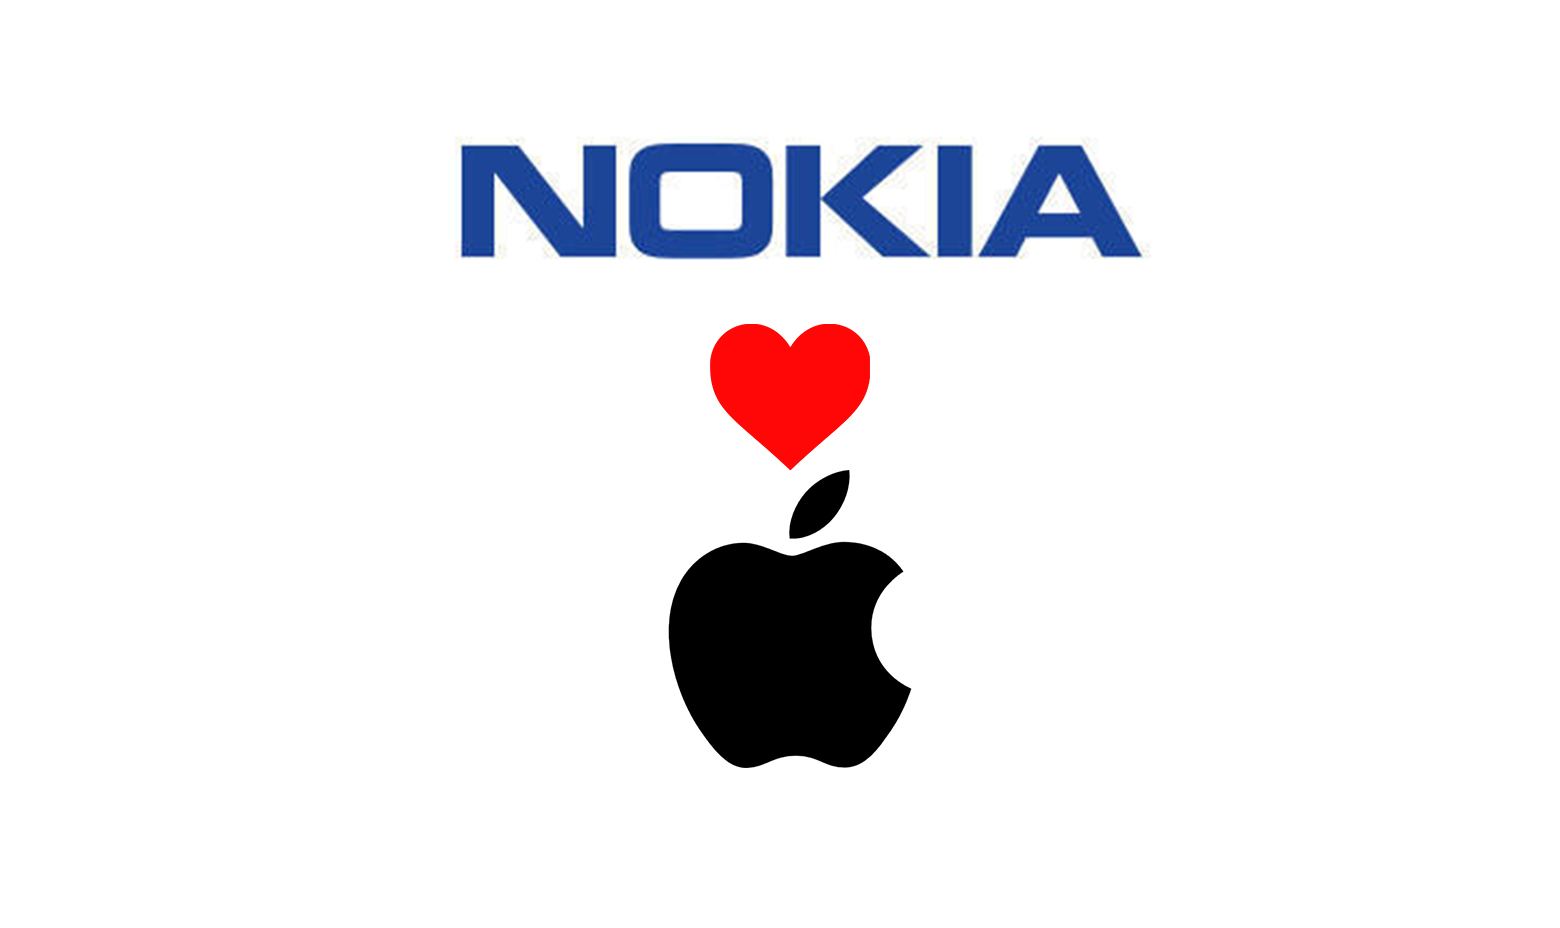 Nokia received $2B from Apple as part of settlement agreement